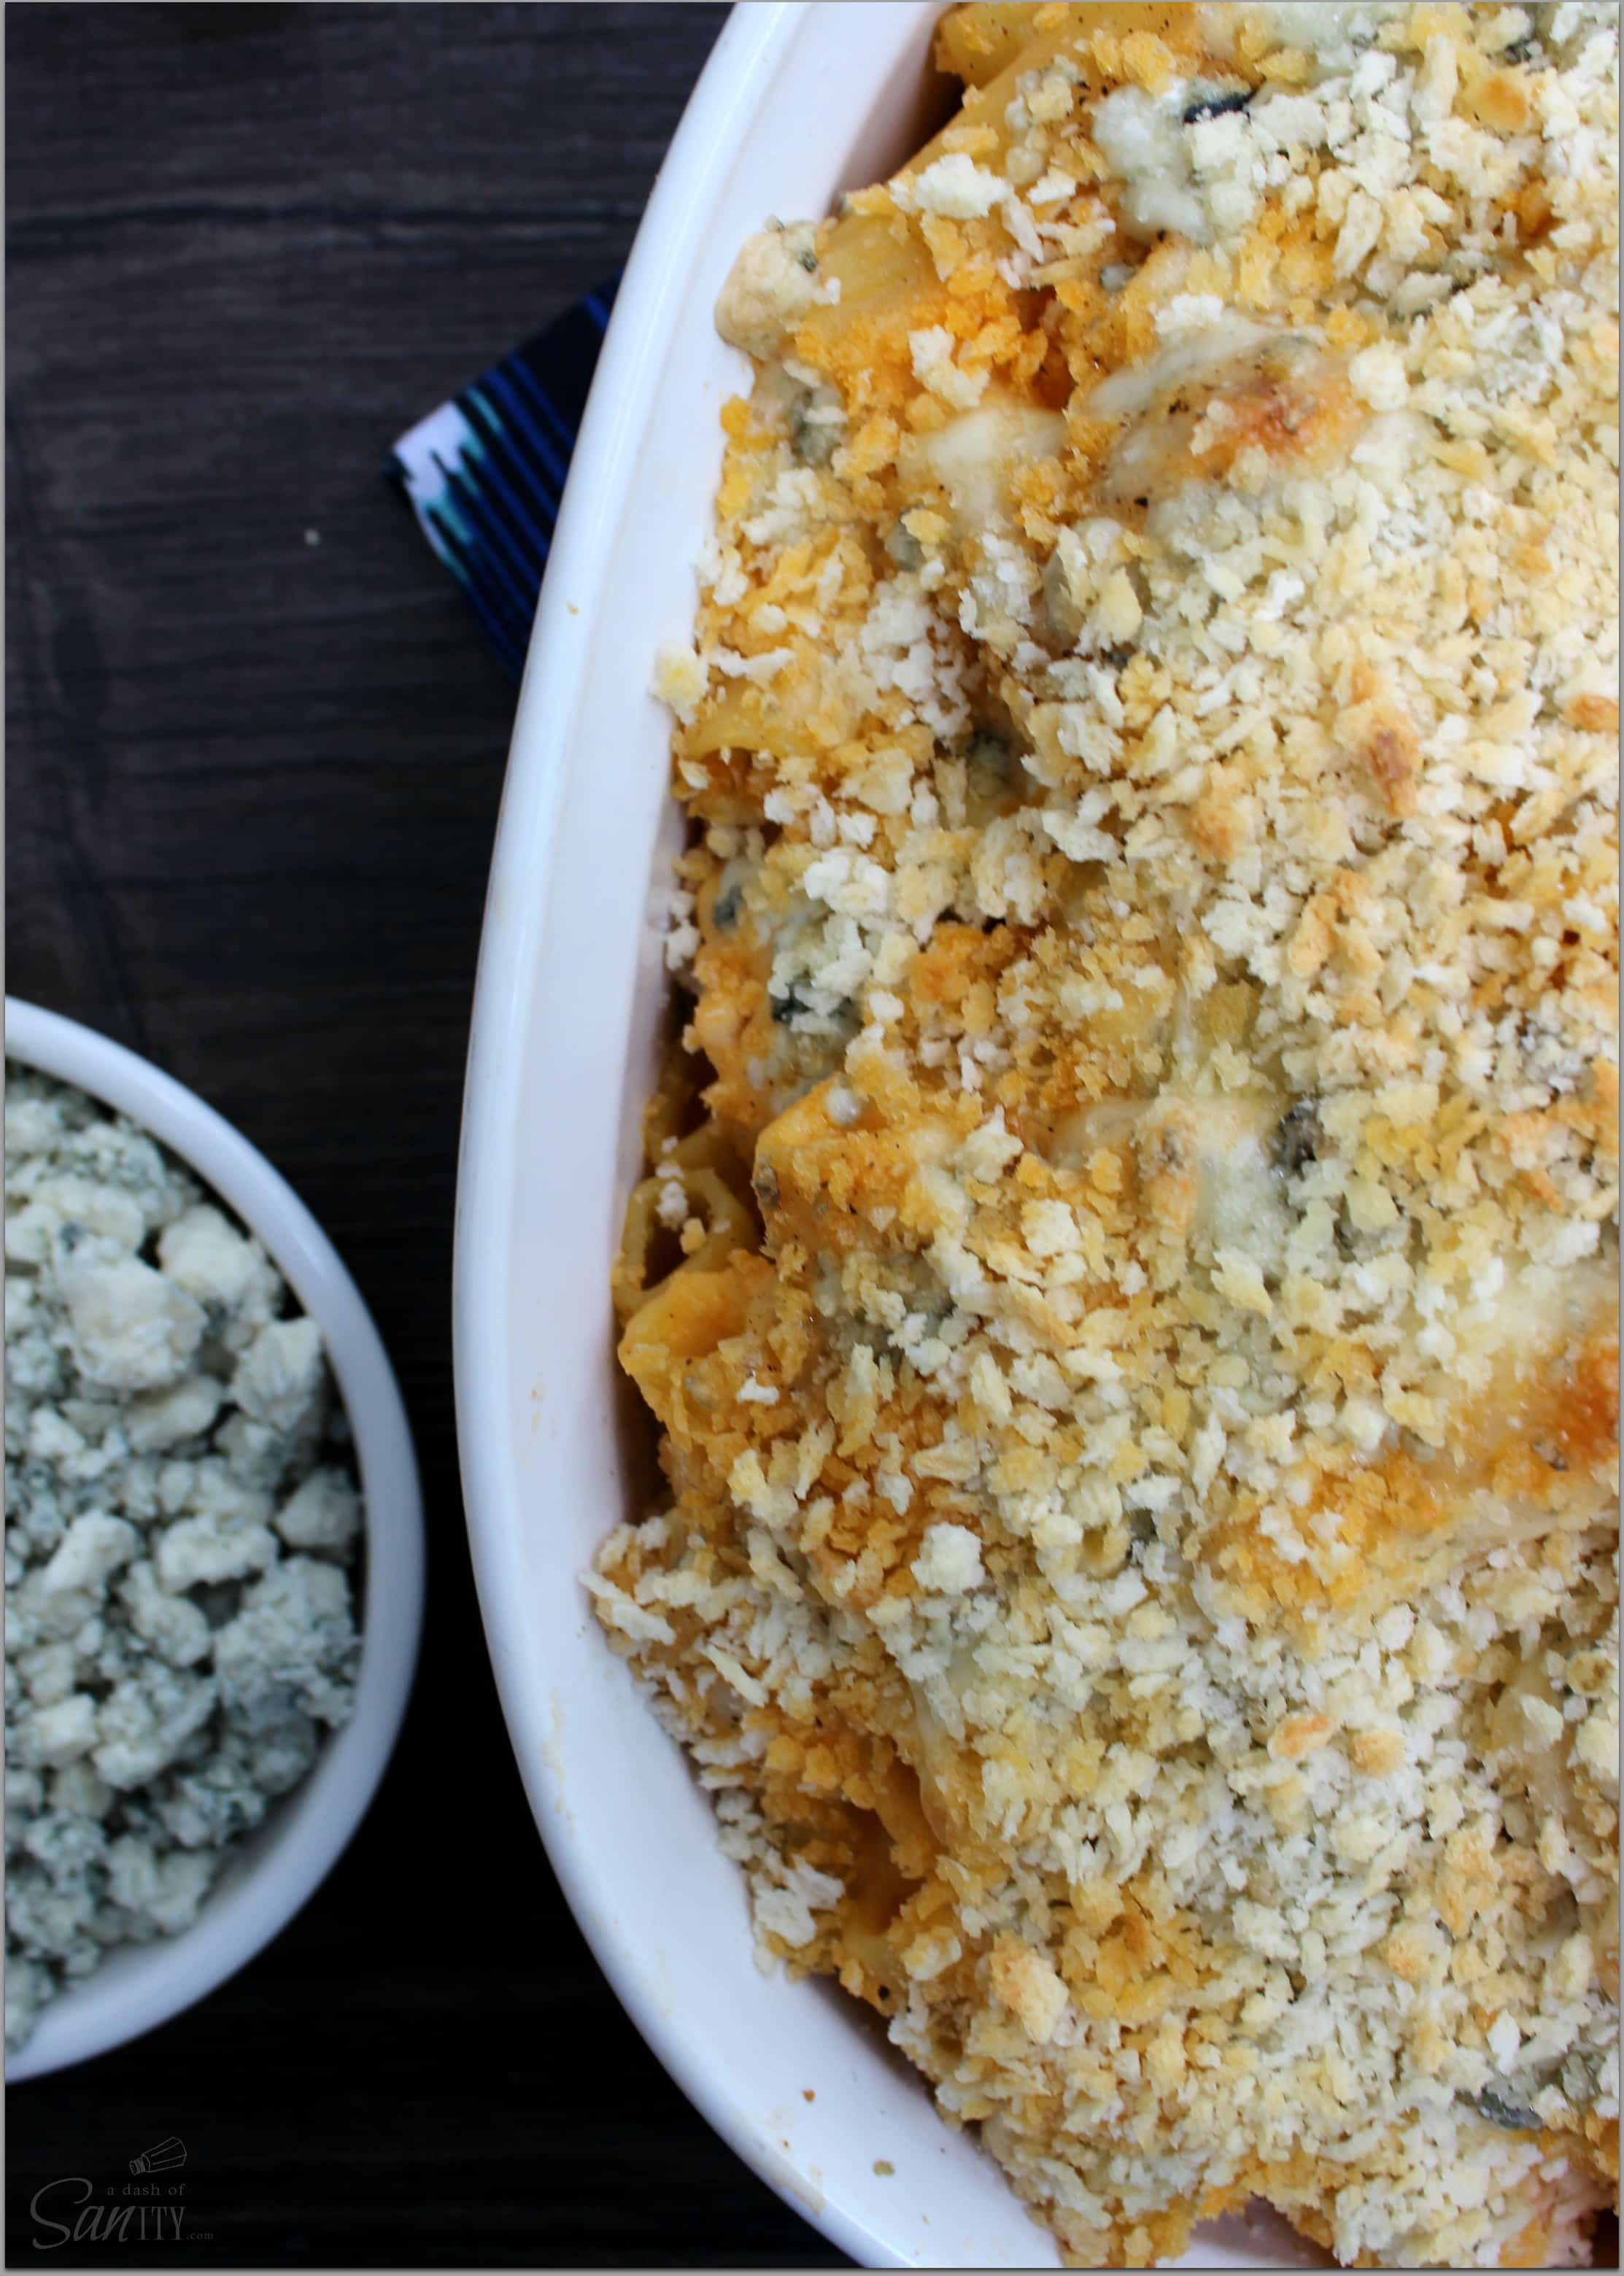 This Creamy Buffalo Chicken bake is a deliciously creamy pasta dish inspired from one of America's favorite appetizers, Buffalo Chicken Wings.